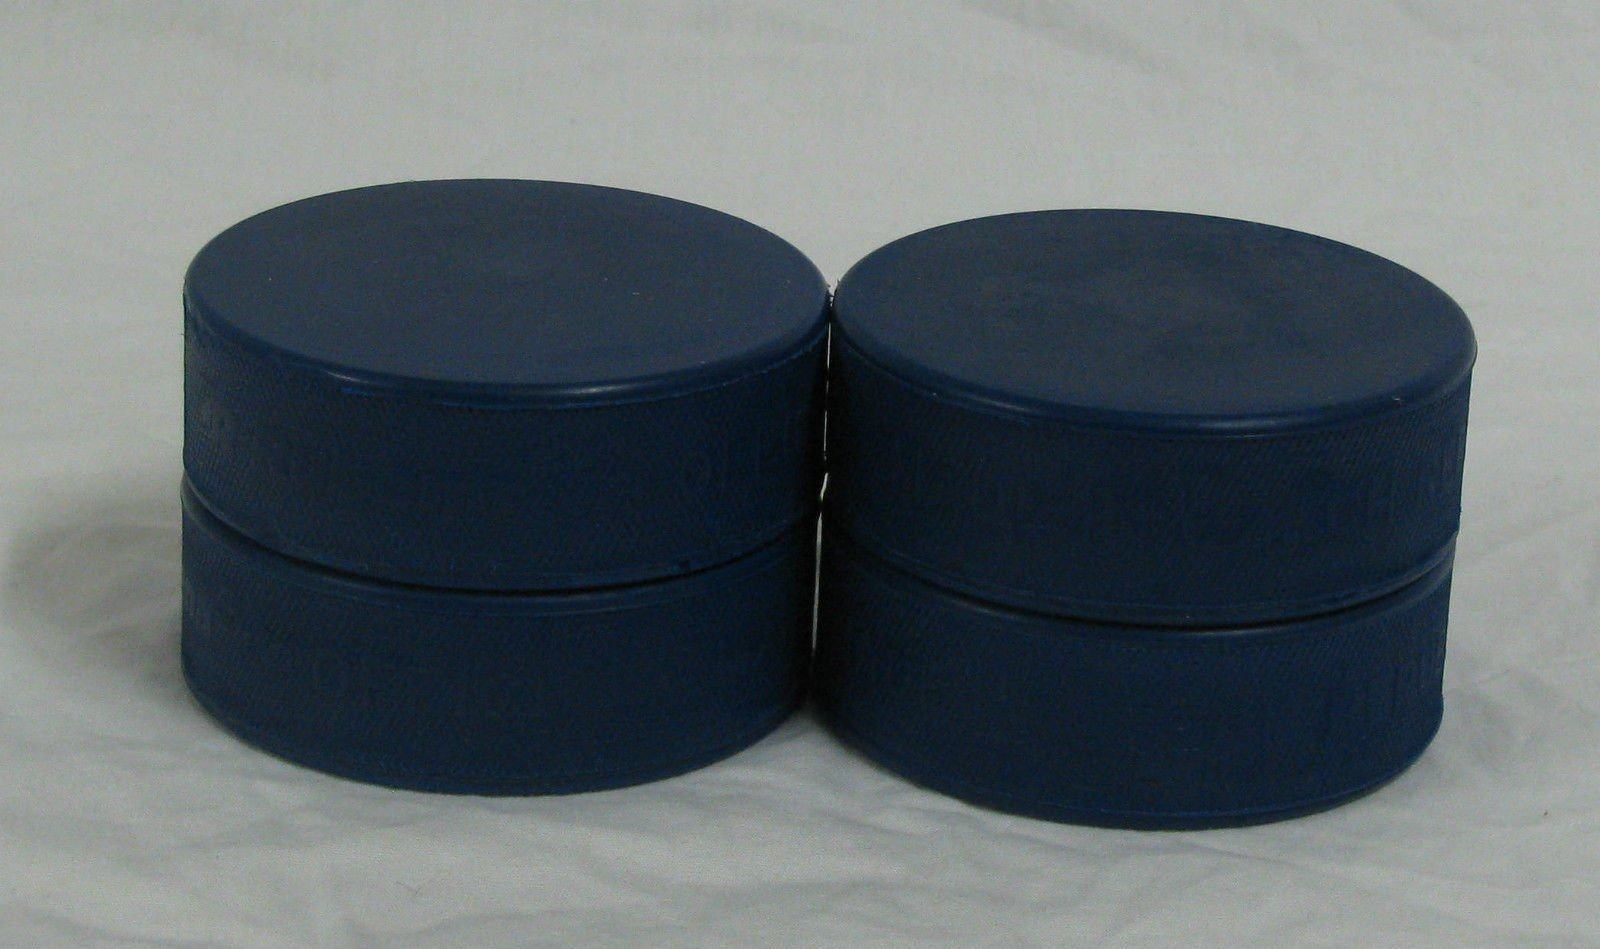 New A&R 4 Pack Youth Mite Blue Ice Hockey PUCKS Official Size Lighter 4oz Weight